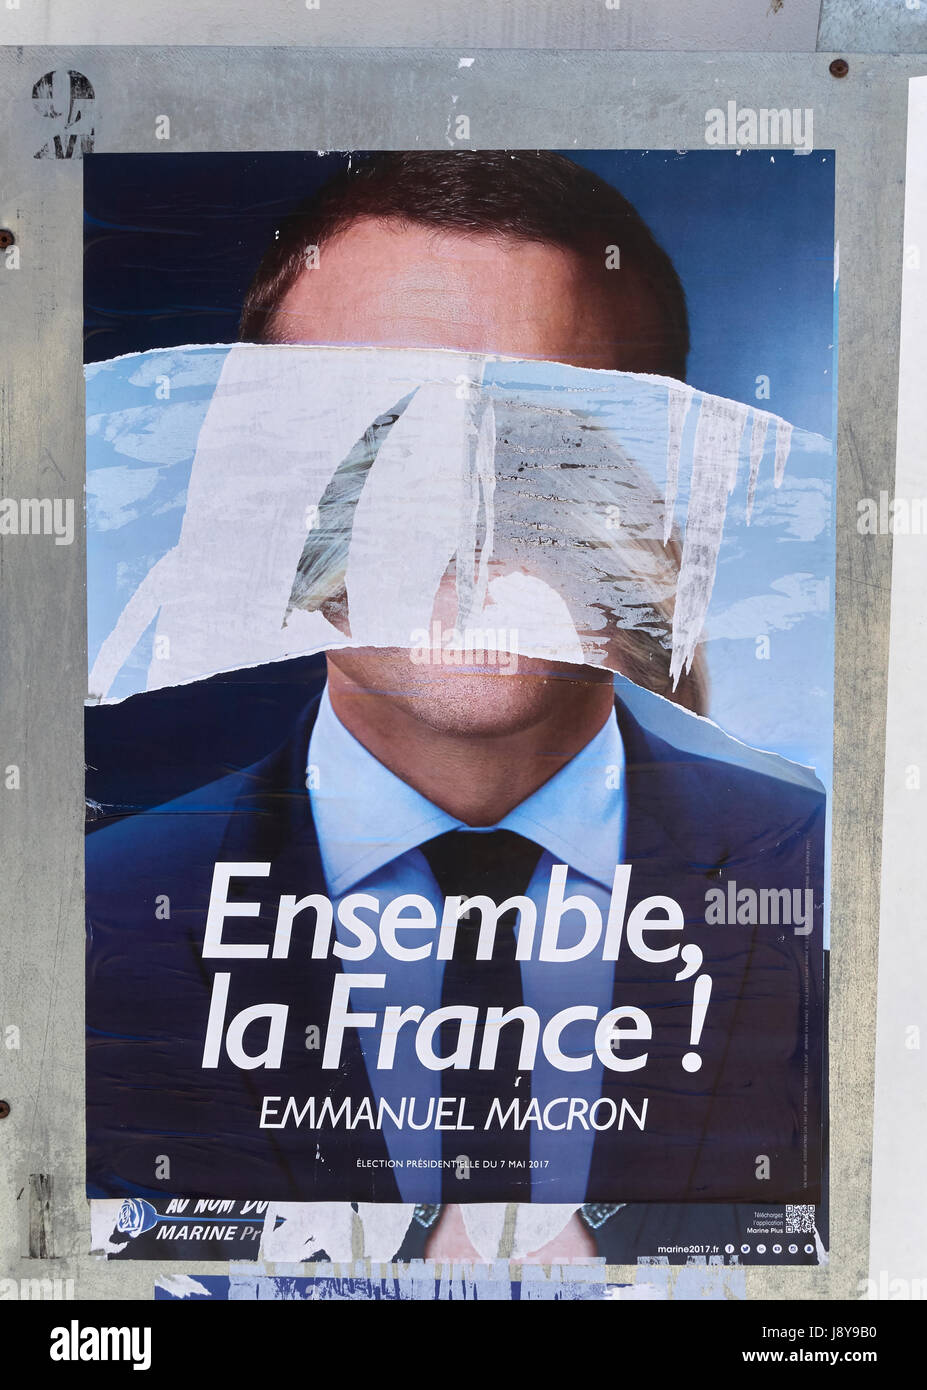 portrait of Emmanuel Macron vandalized and disfigured by vandals during french presidential election in France - Stock Image